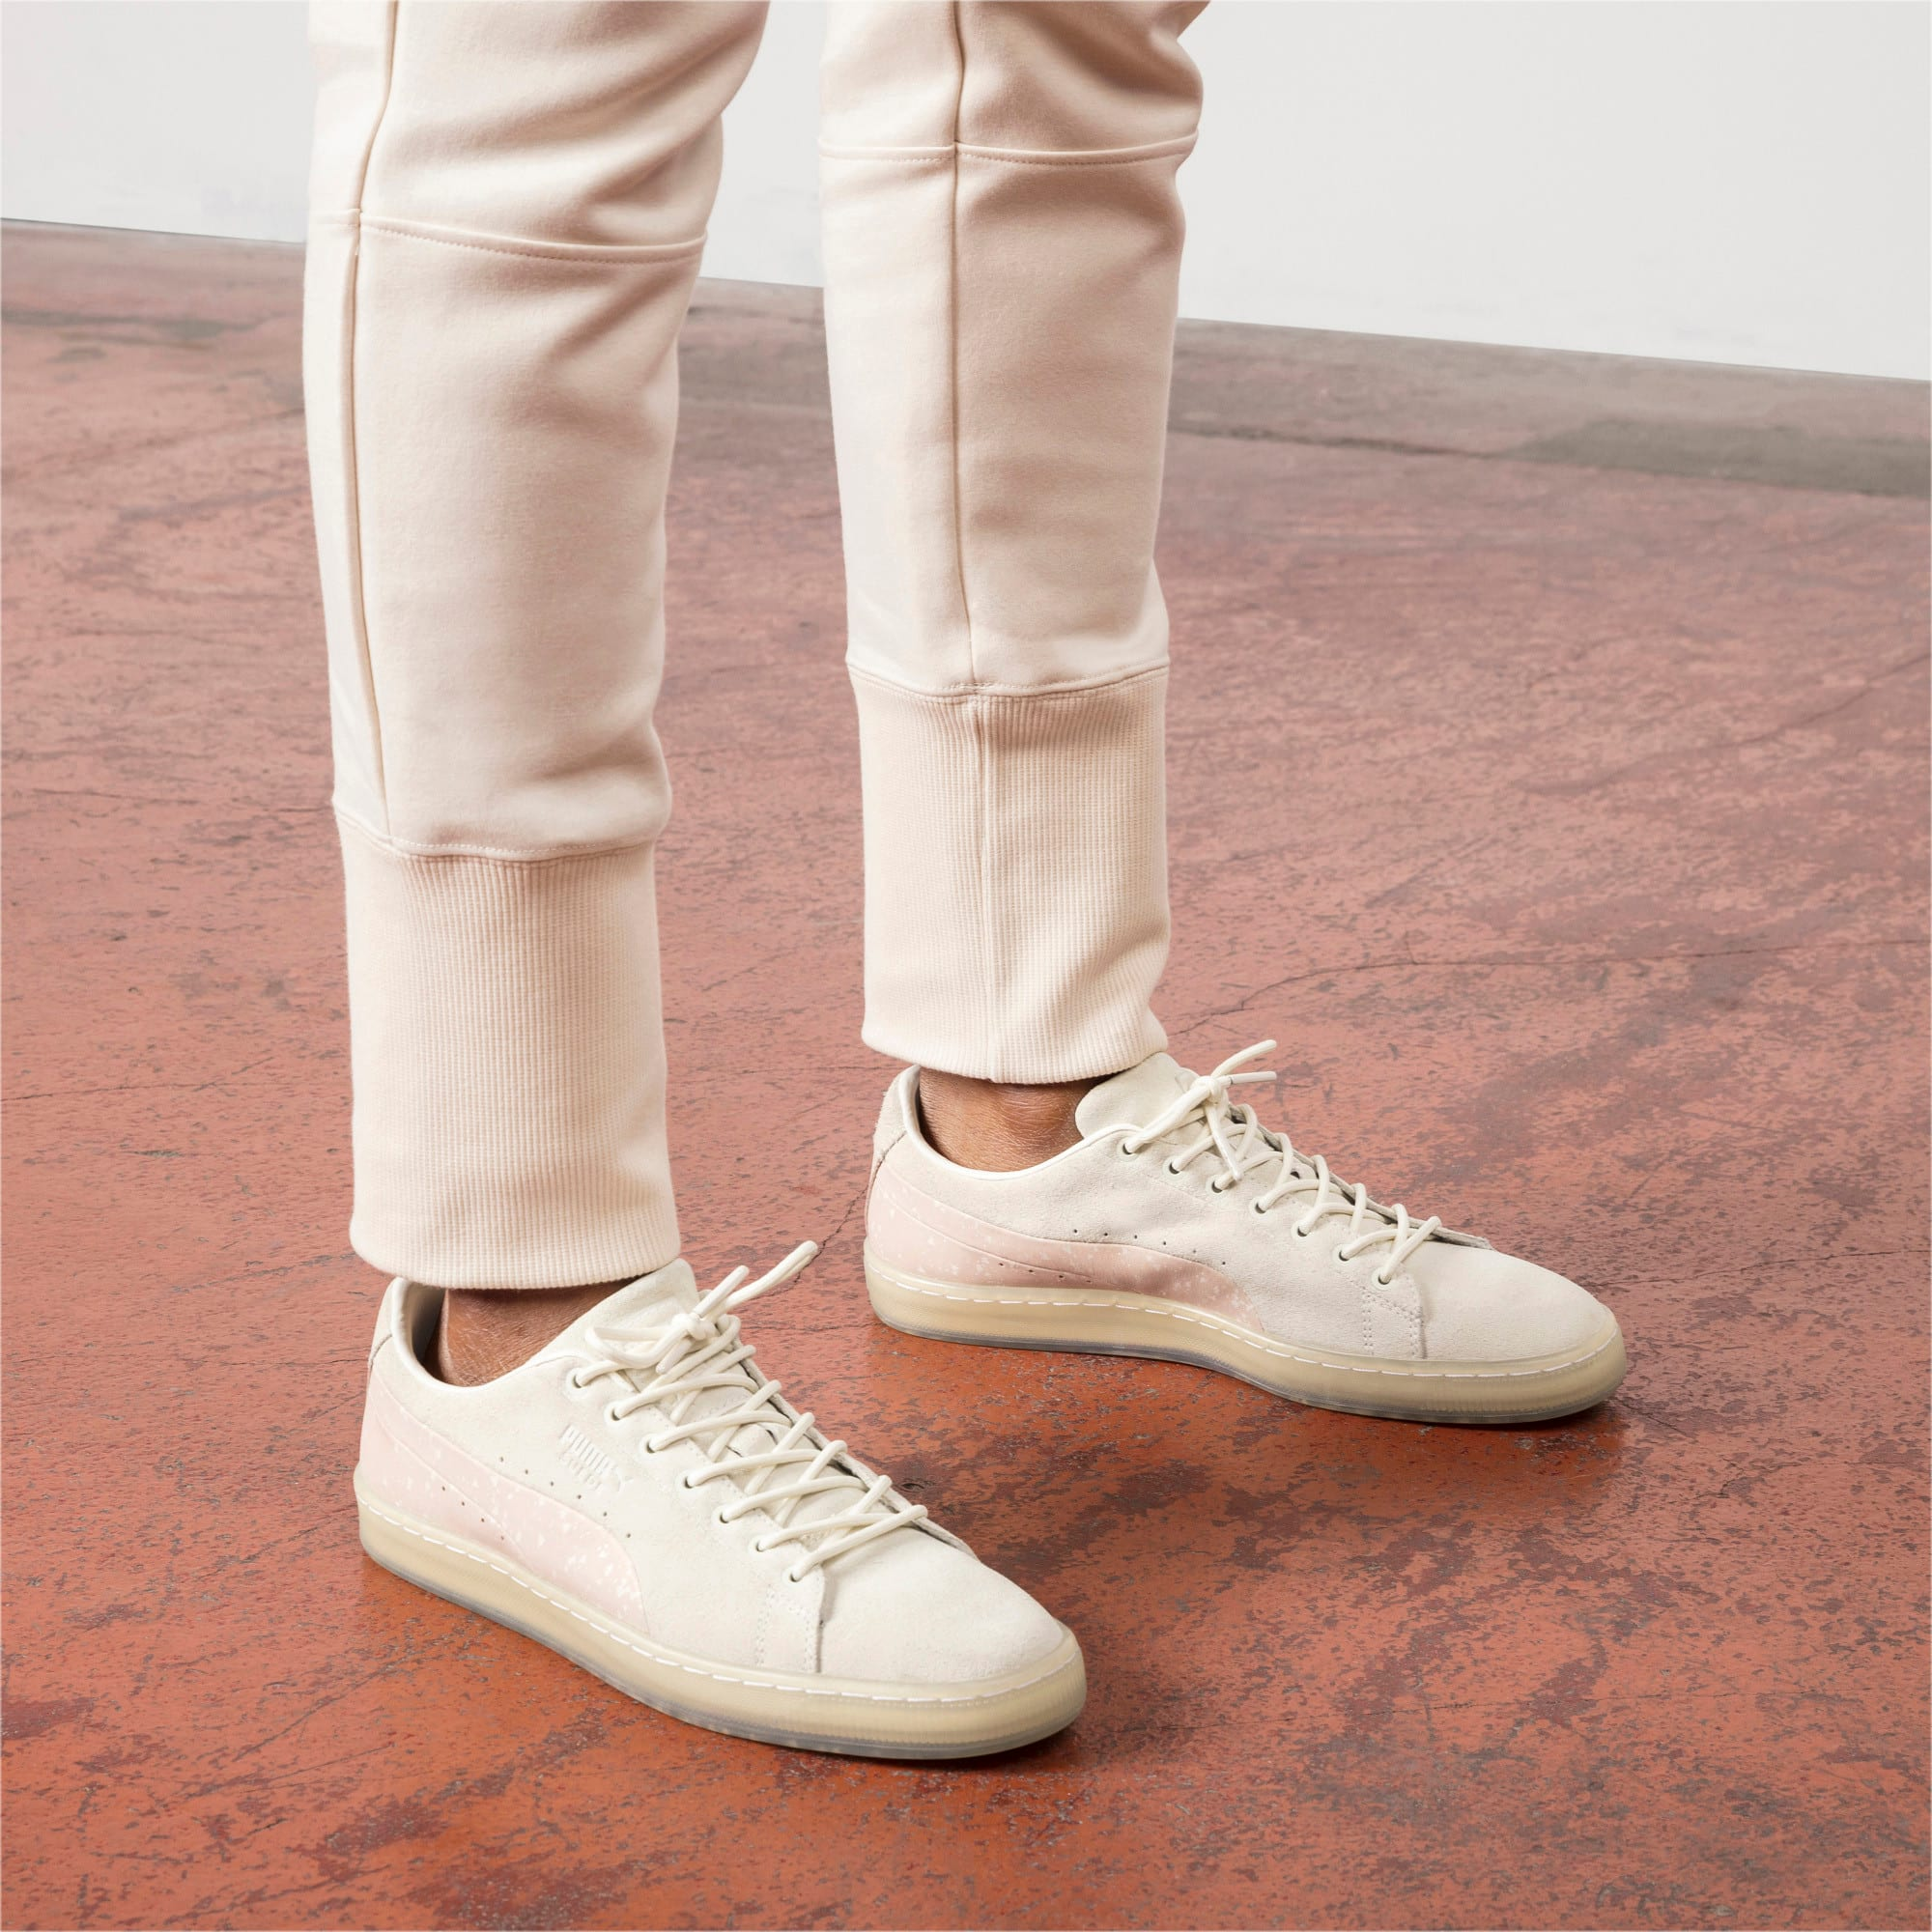 Thumbnail 7 of PUMA x NATUREL Suede Sneakers, Whisper White-Almond, medium